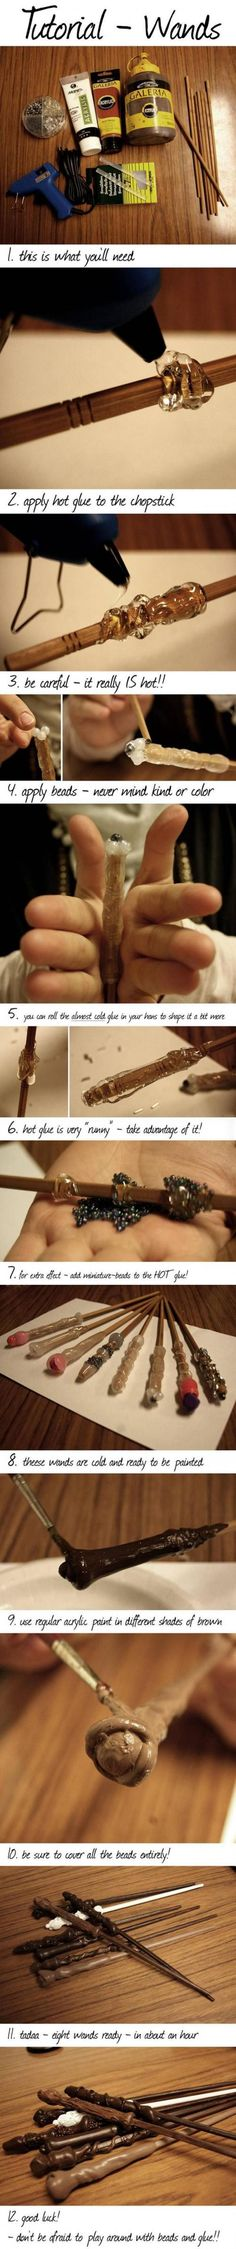 Harry Potter Wand Tutorial - Win Picture